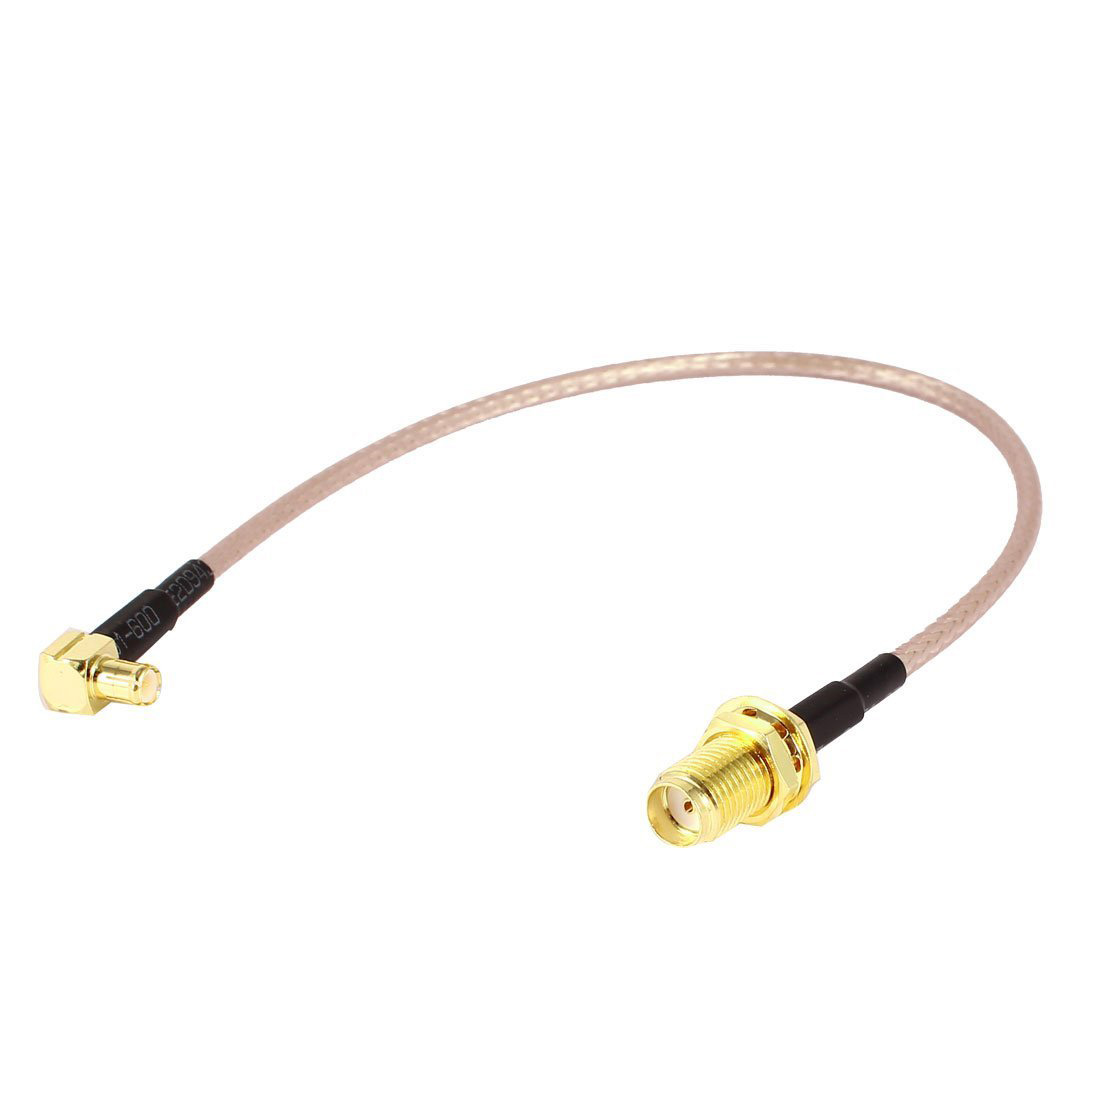 Rf Coaxial Cable : Cm sma female to mcx male right angle adapter rf coaxial